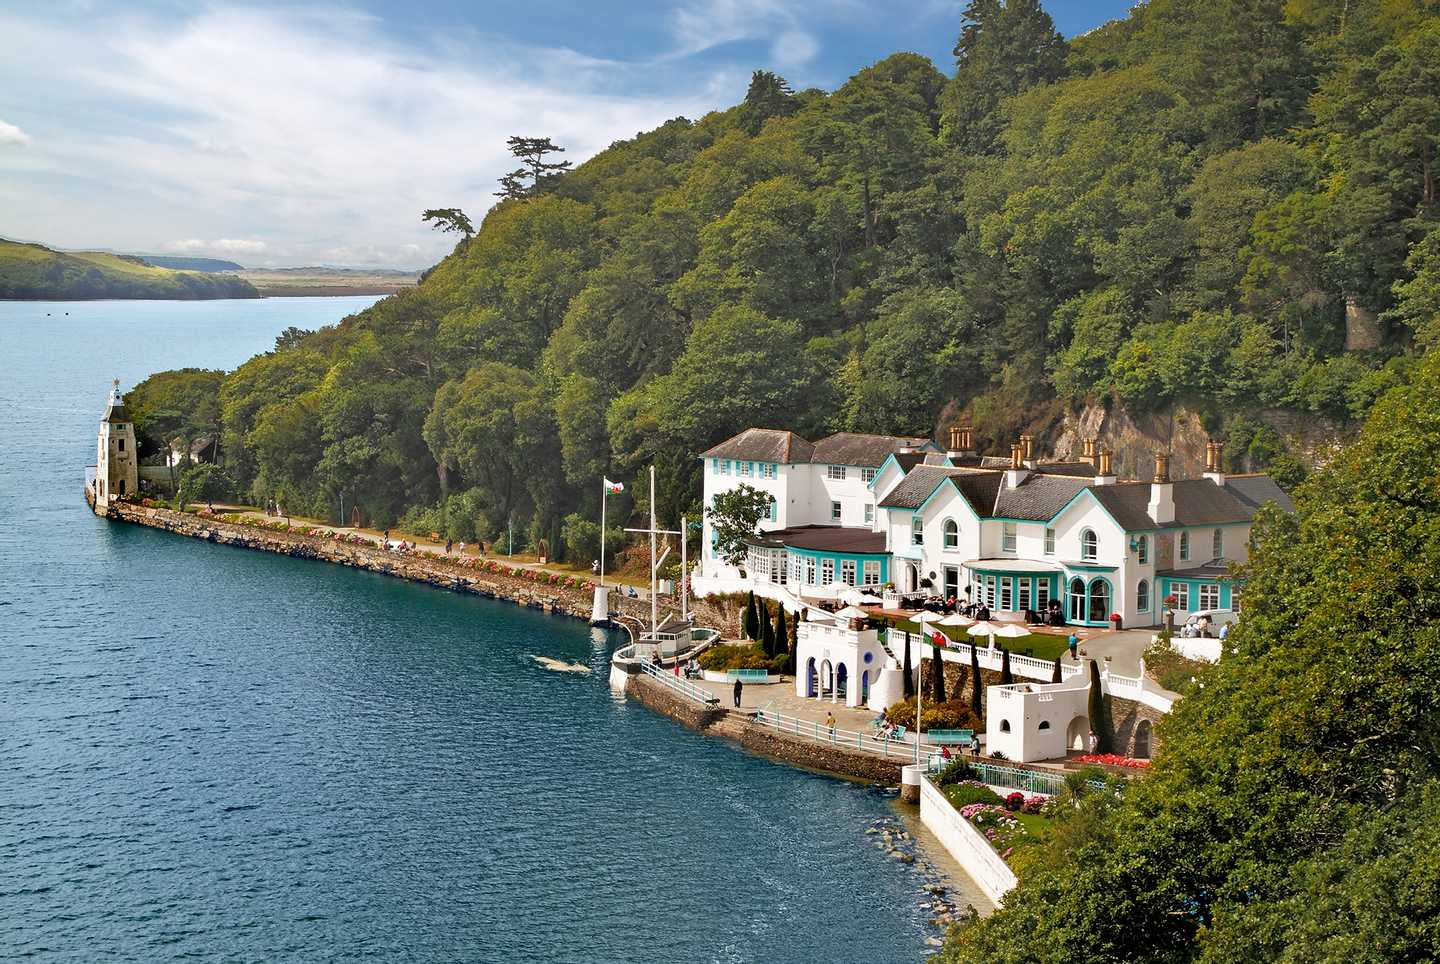 A picturesque view of Portmeirion